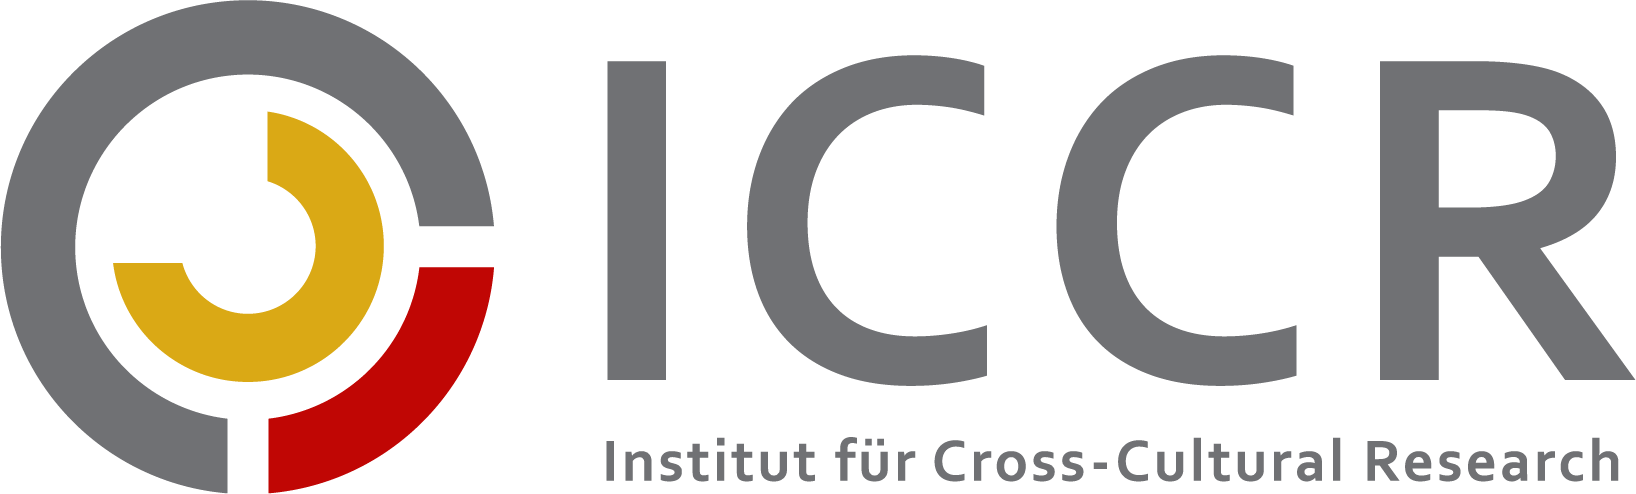 Institut für Cross-Cultural Research